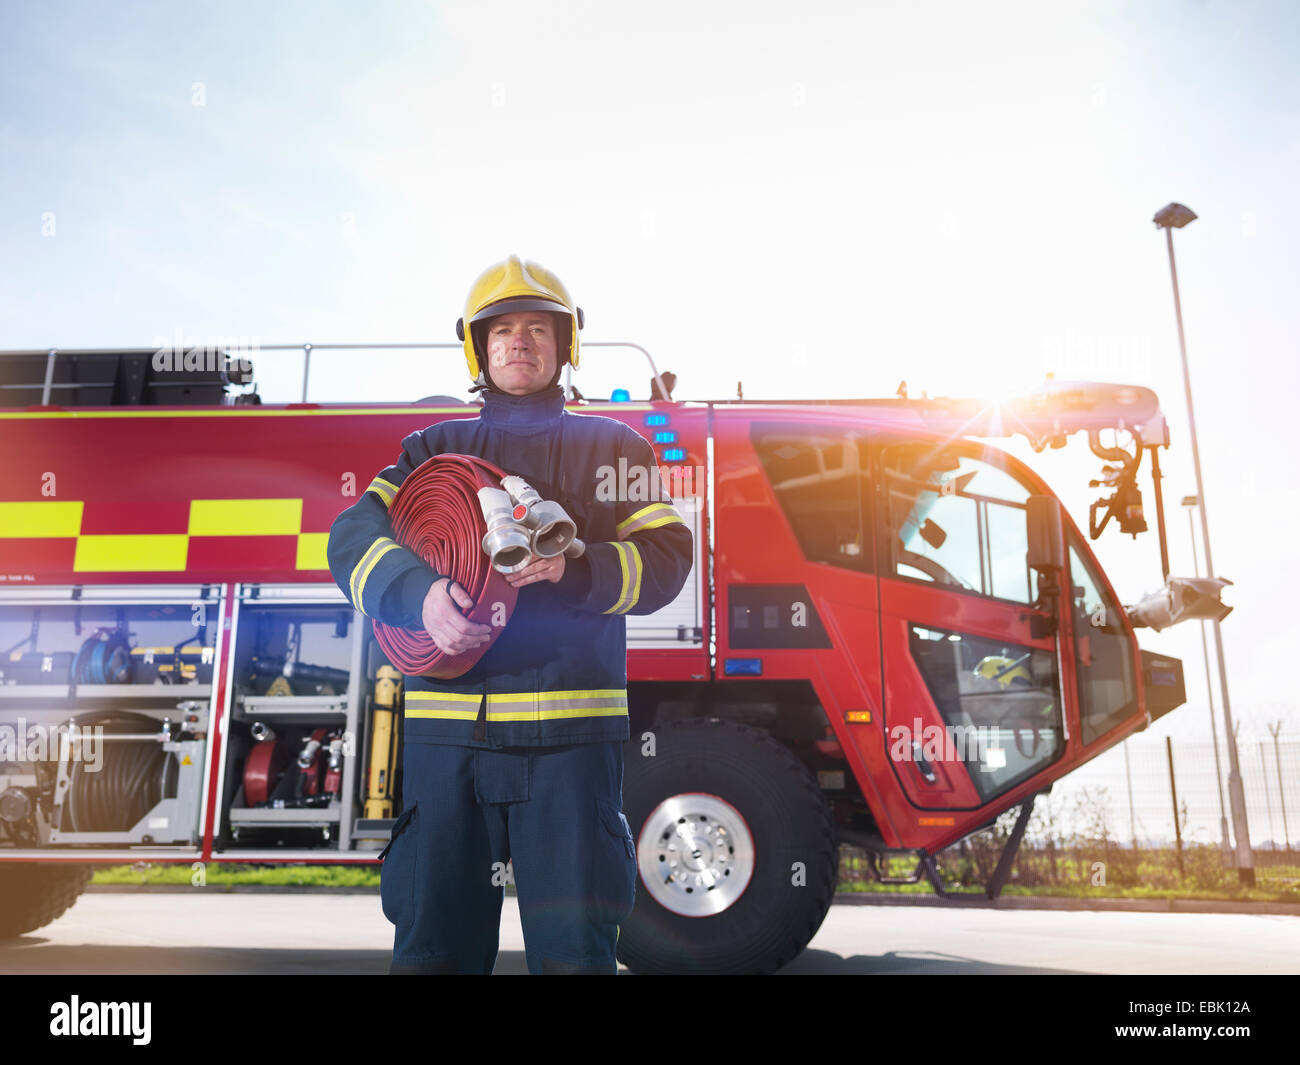 Portrait of fireman in front of fire engine in airport fire station - Stock Image